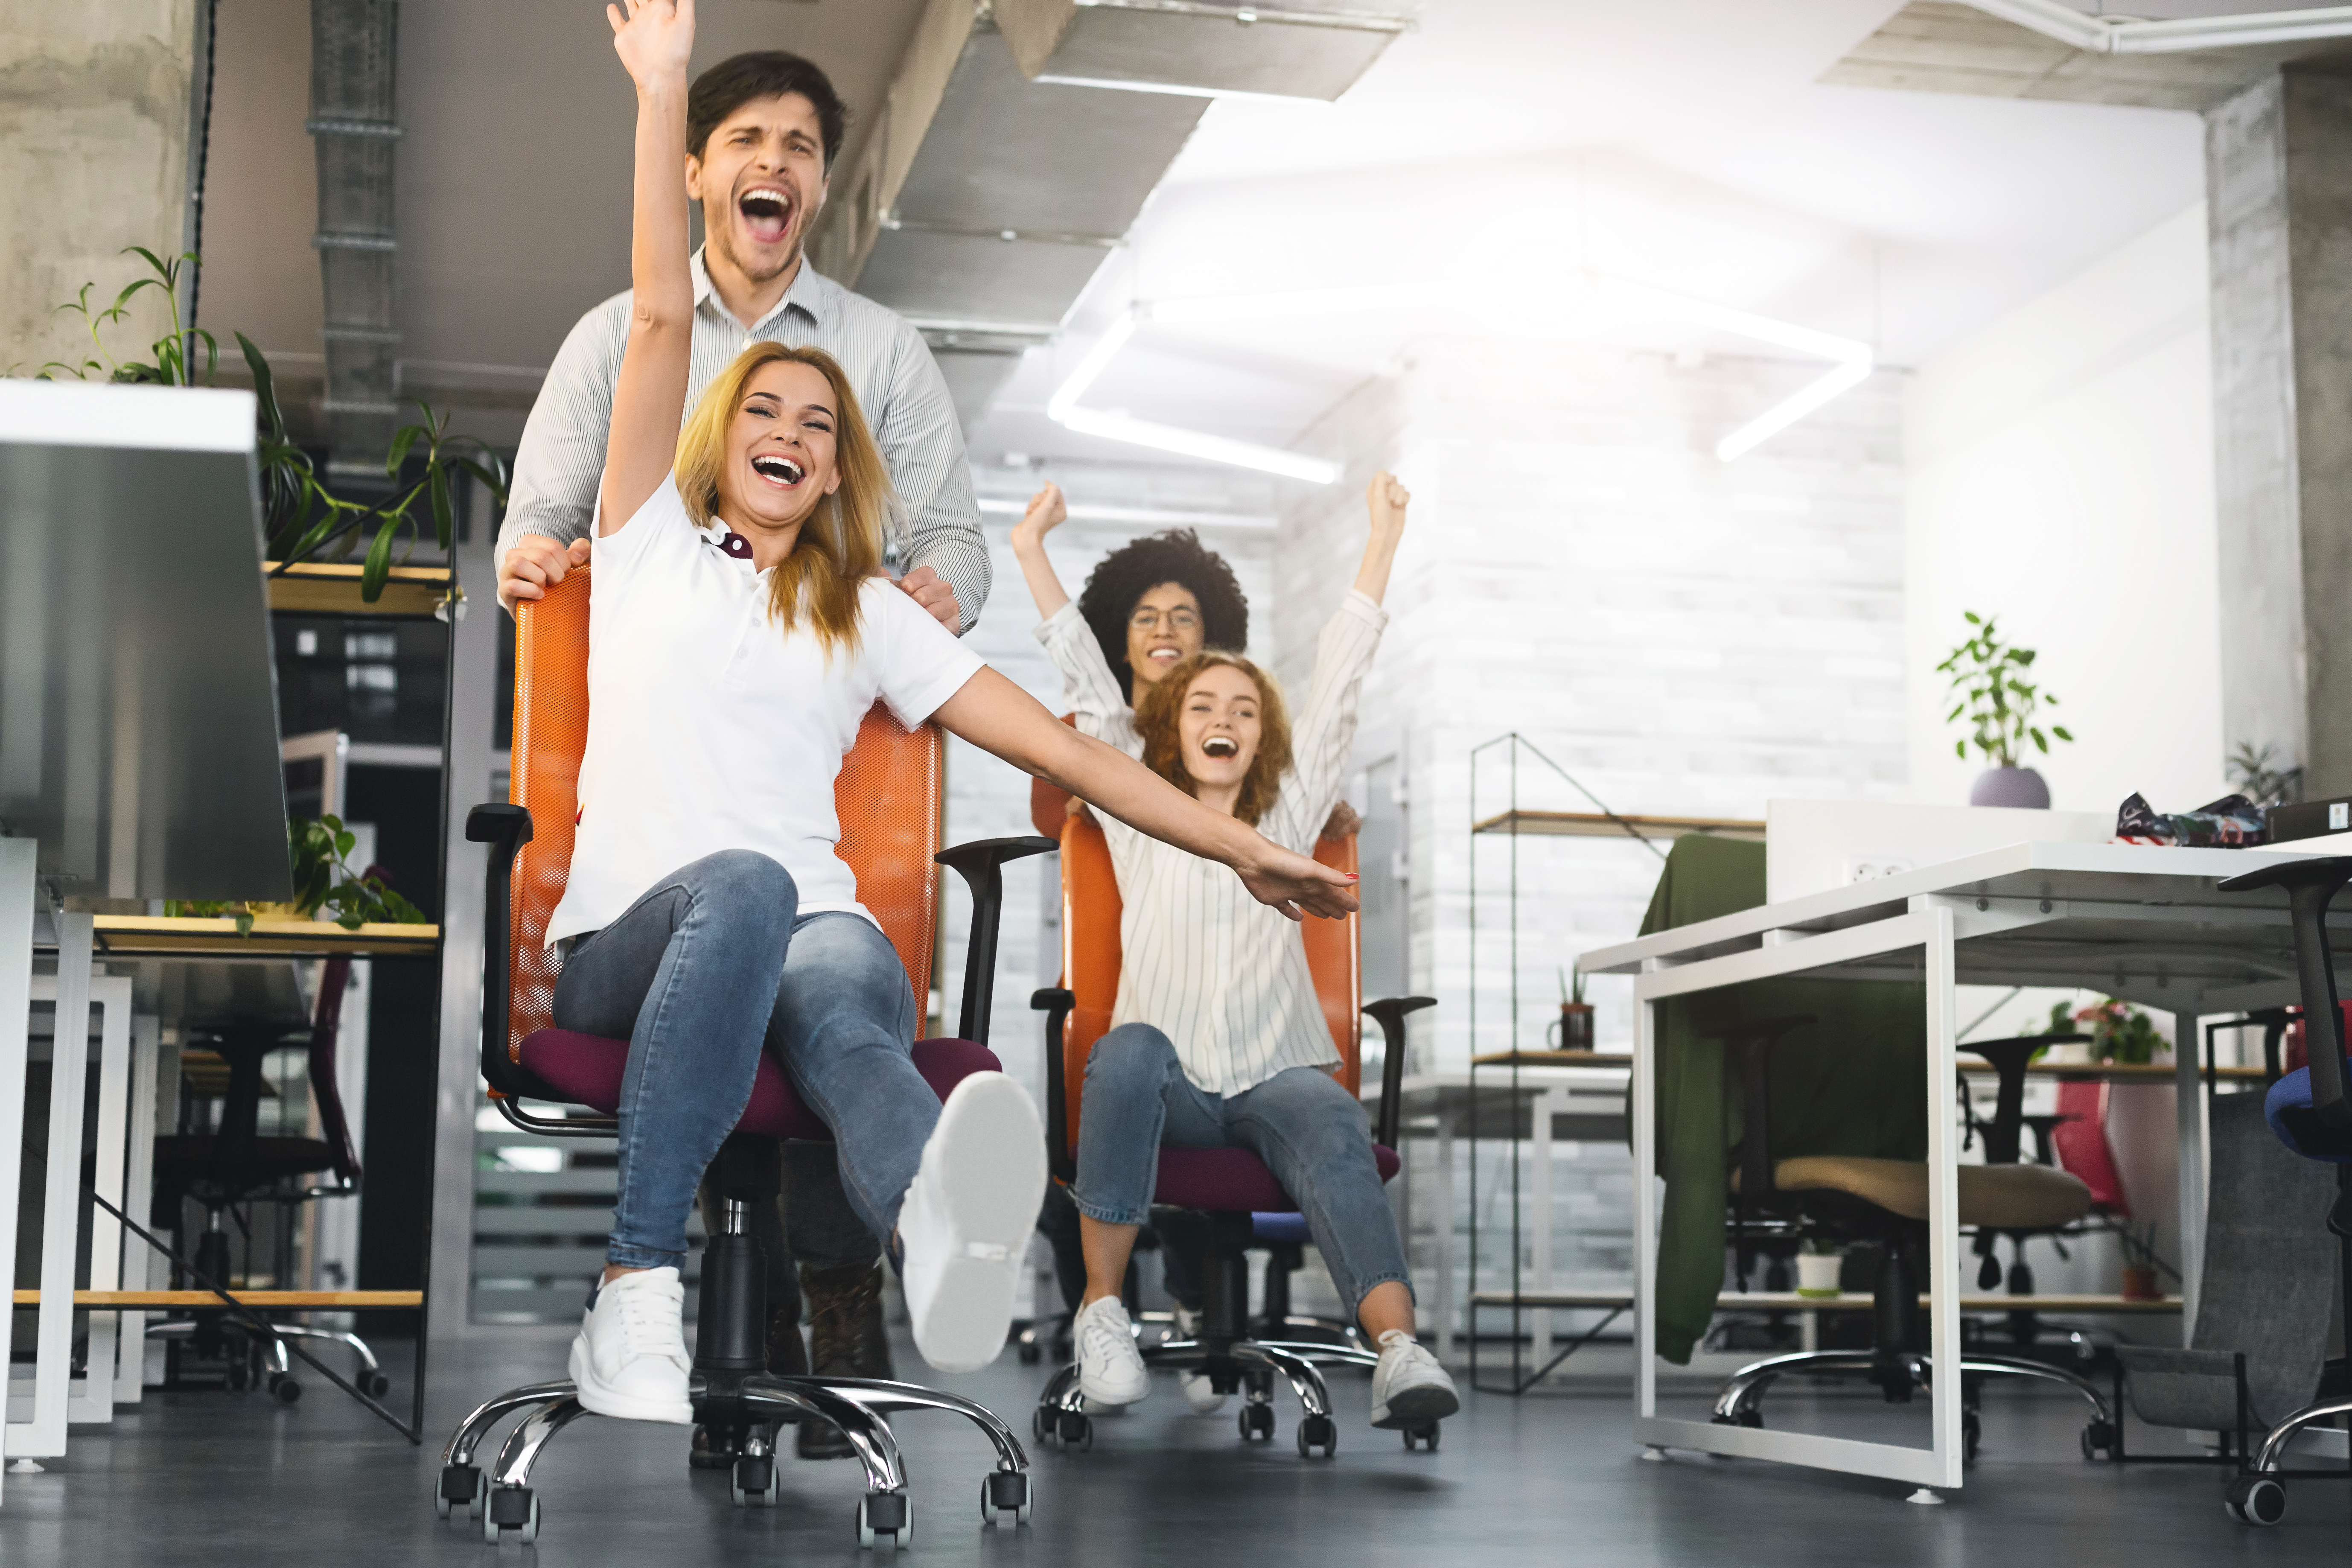 overjoyed-millennial-colleagues-racing-on-office-XBNSKL6